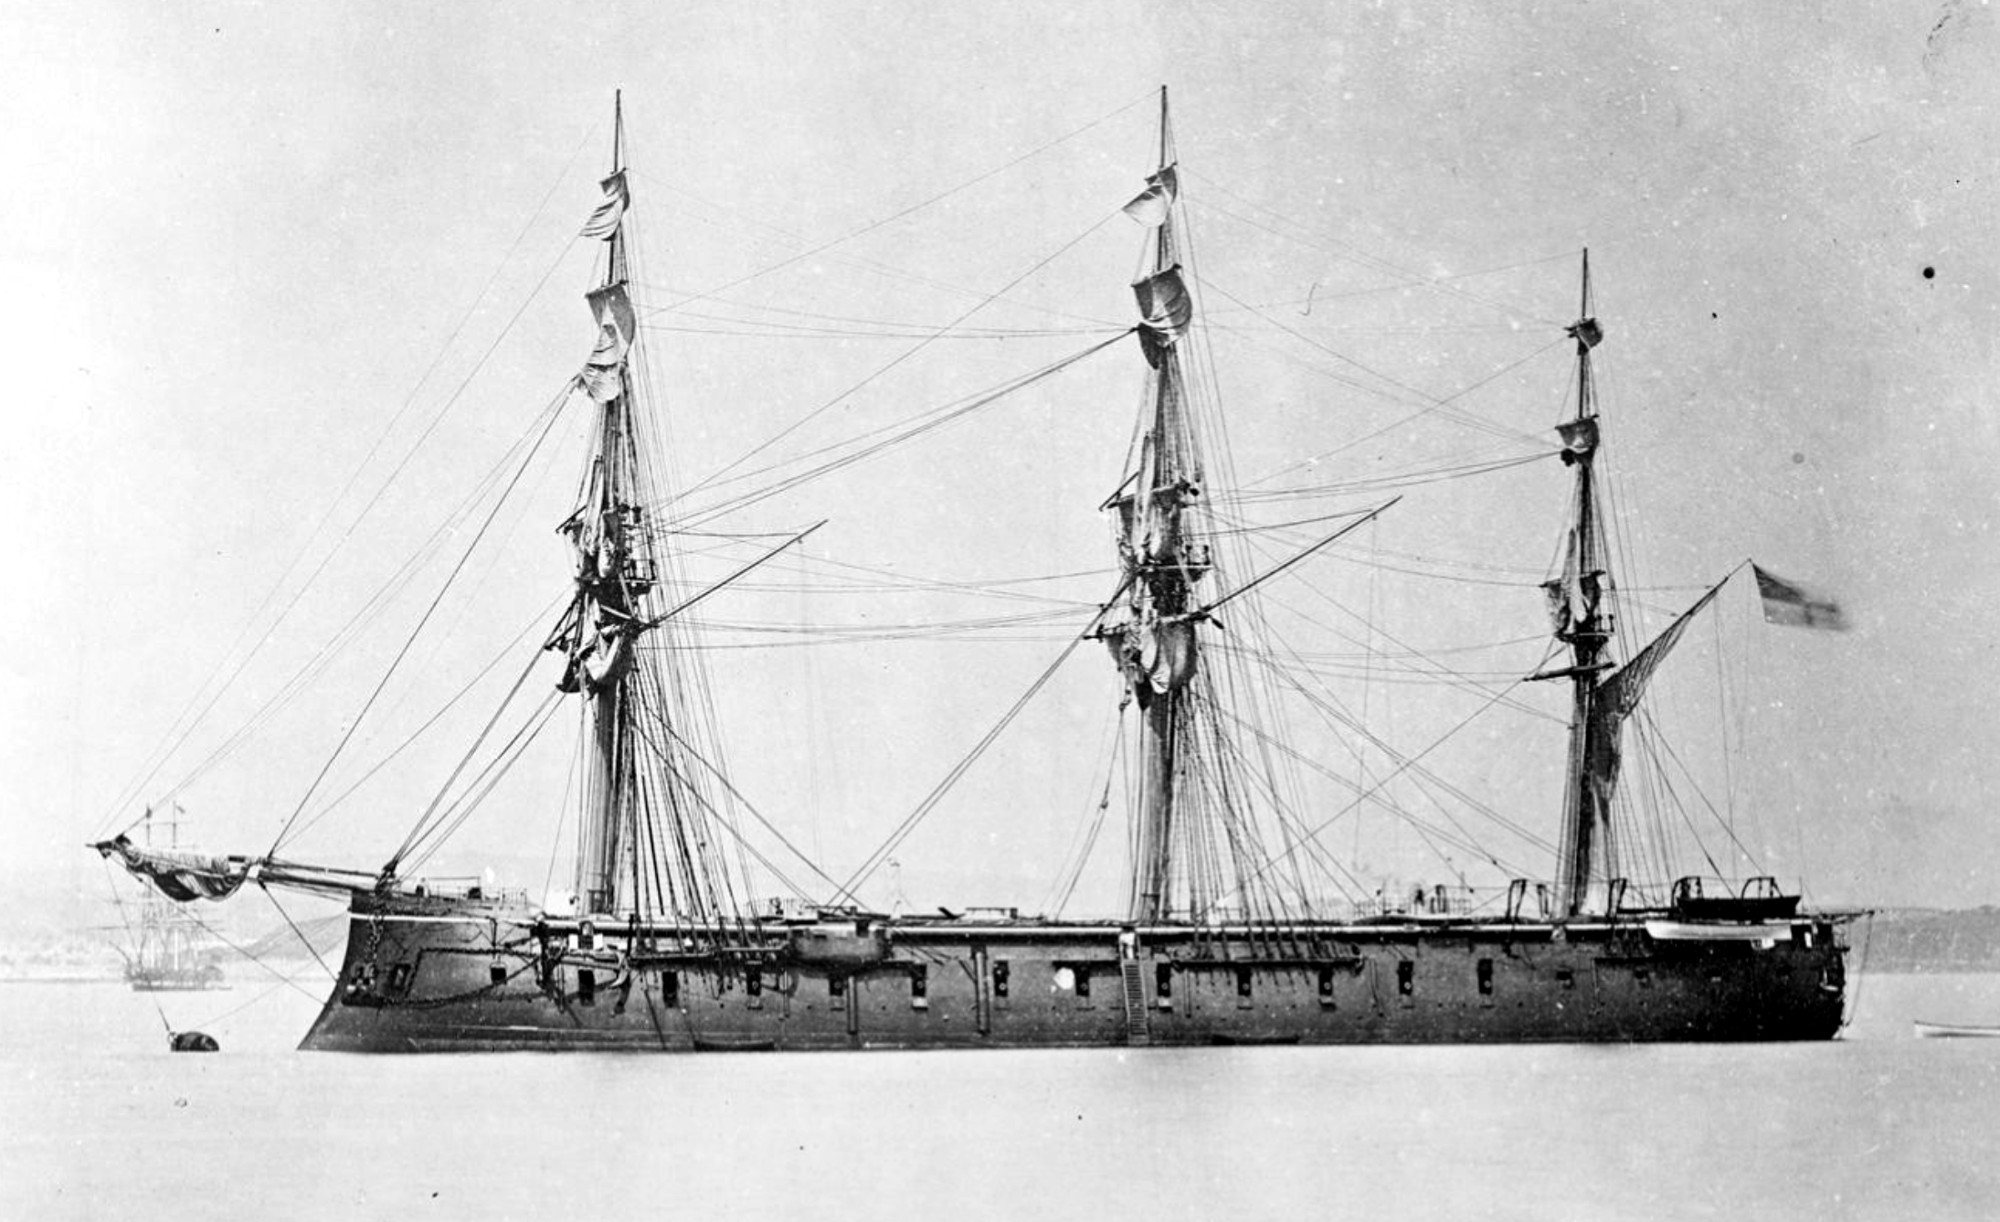 HMS Lord Clyde